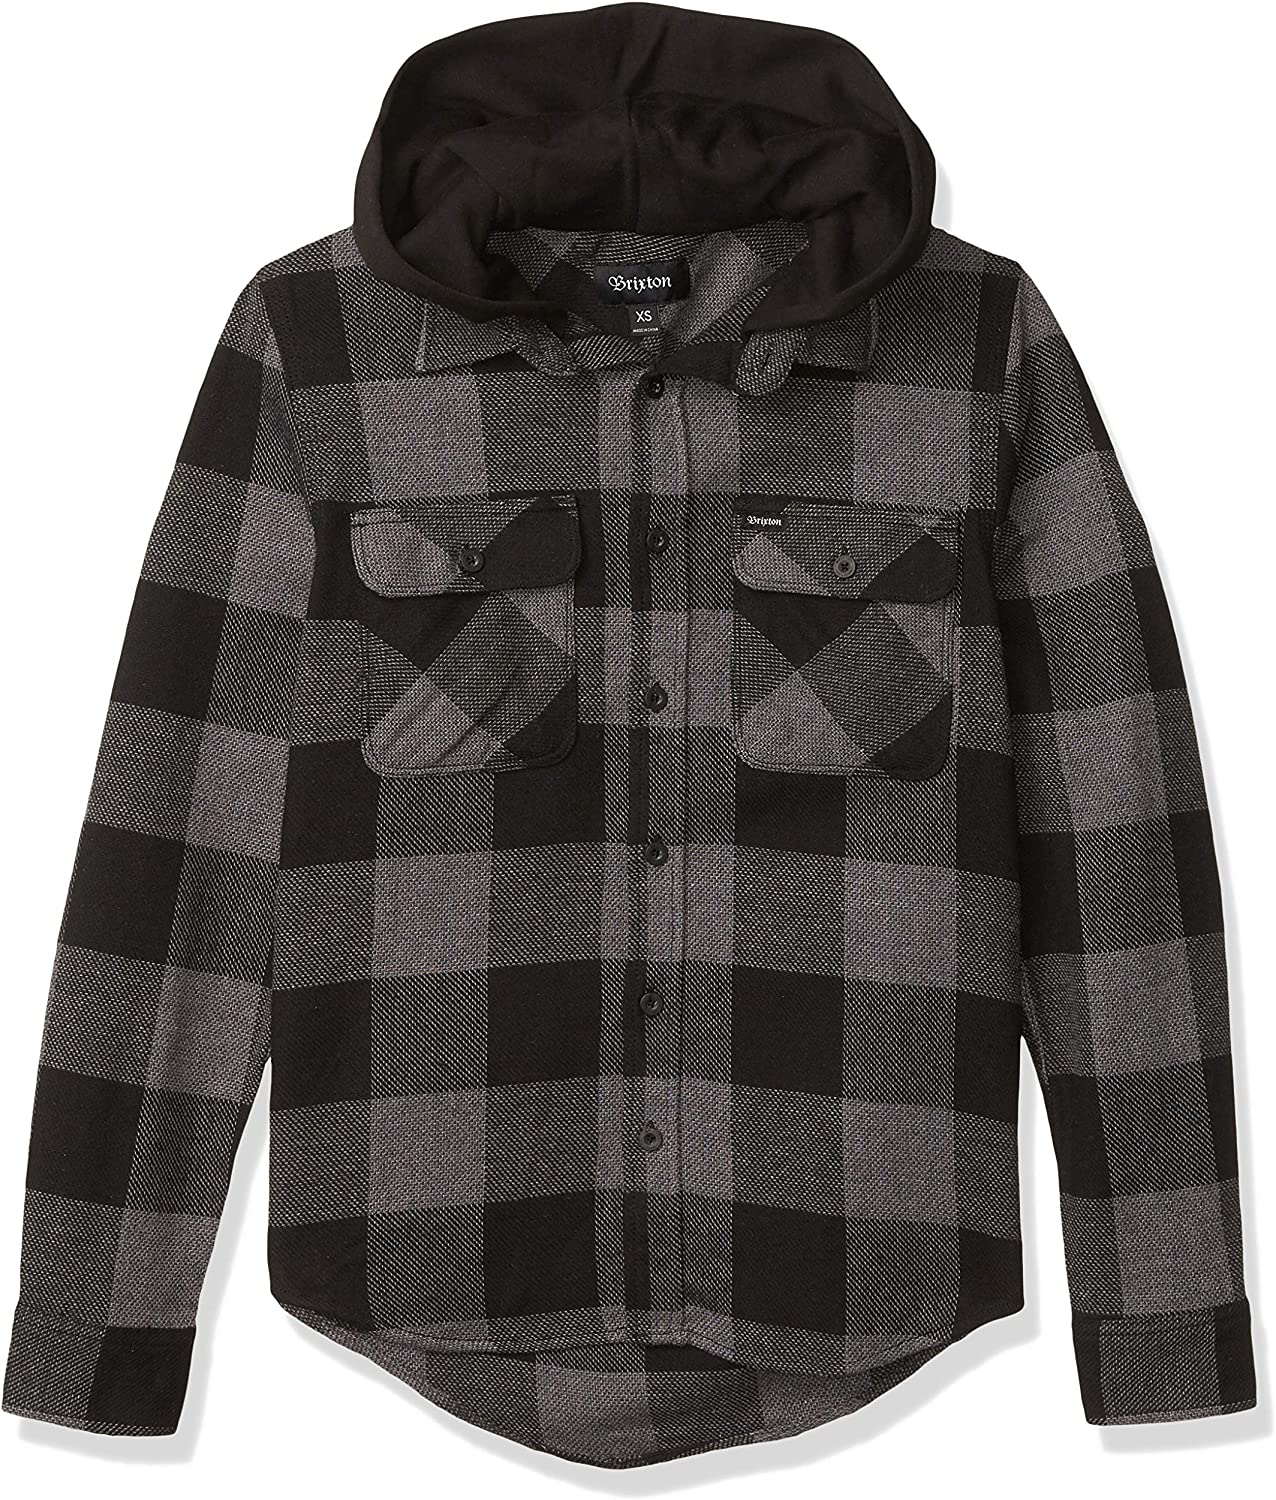 Brixton Men's Bowery Standard Fit Hooded Long Sleeve Flannel Shirt: Clothing